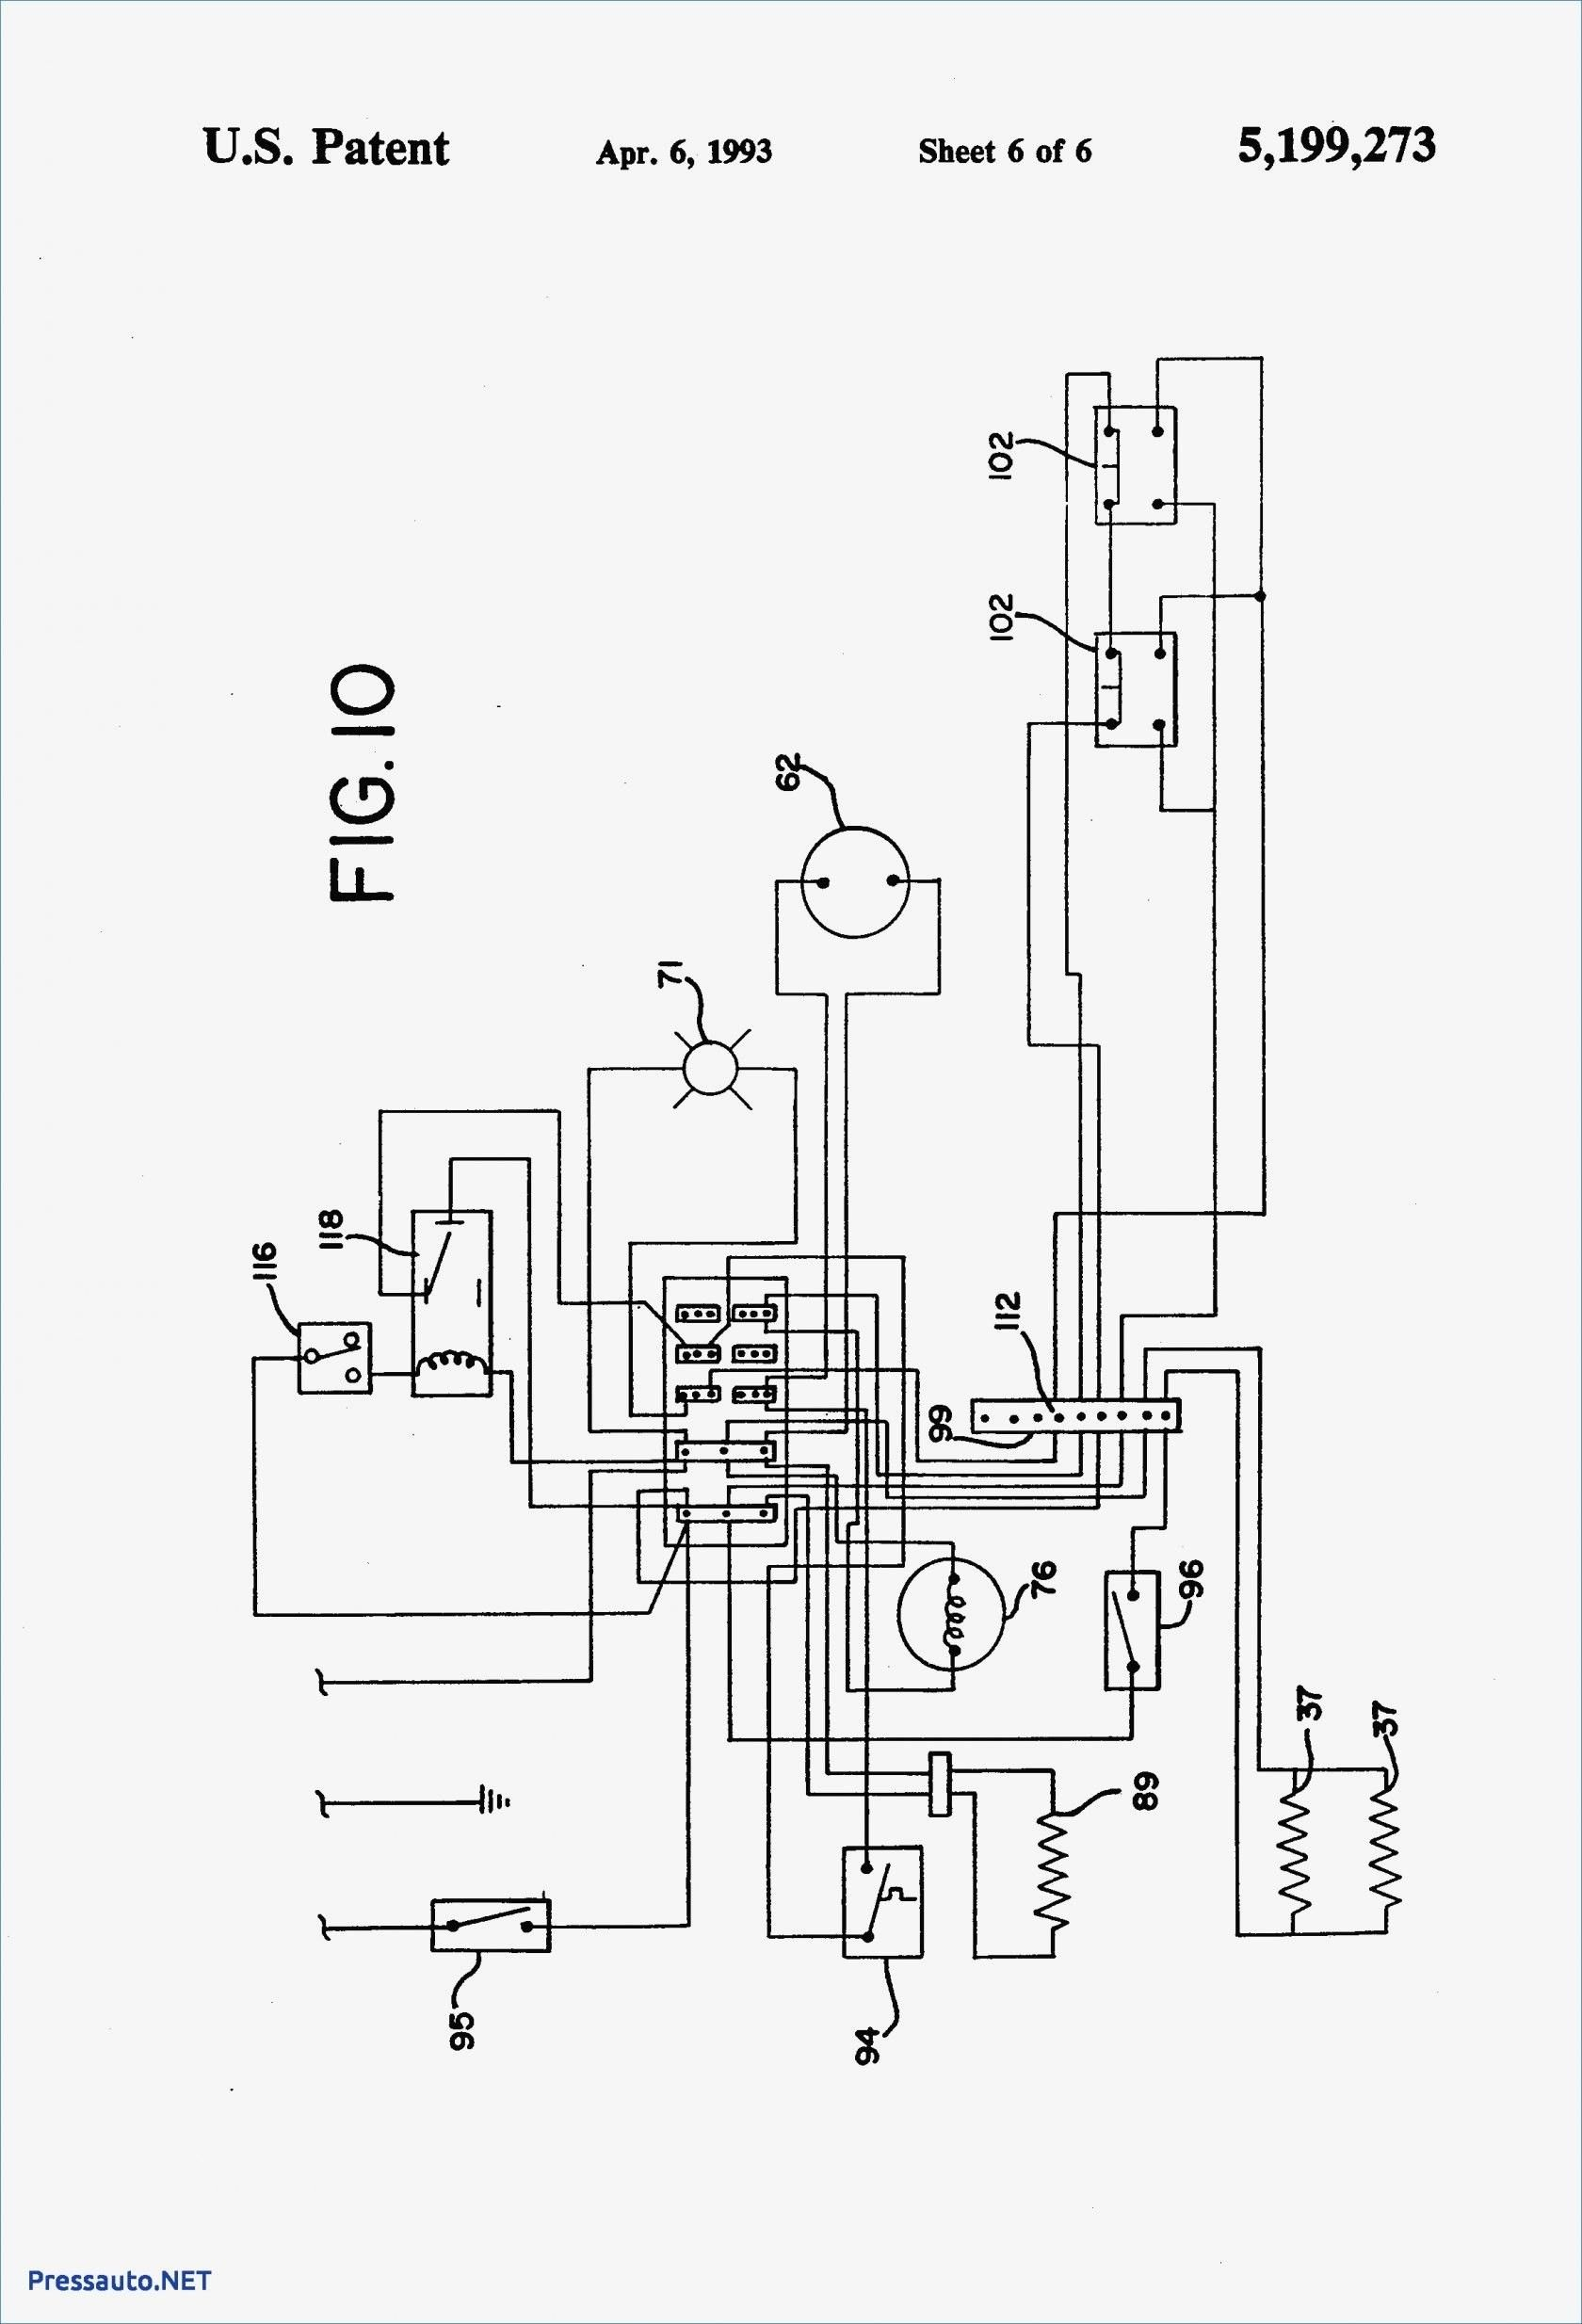 Unique Wiring Diagram For Doorbell Lighted Thermostat Wiring Diagram Wire